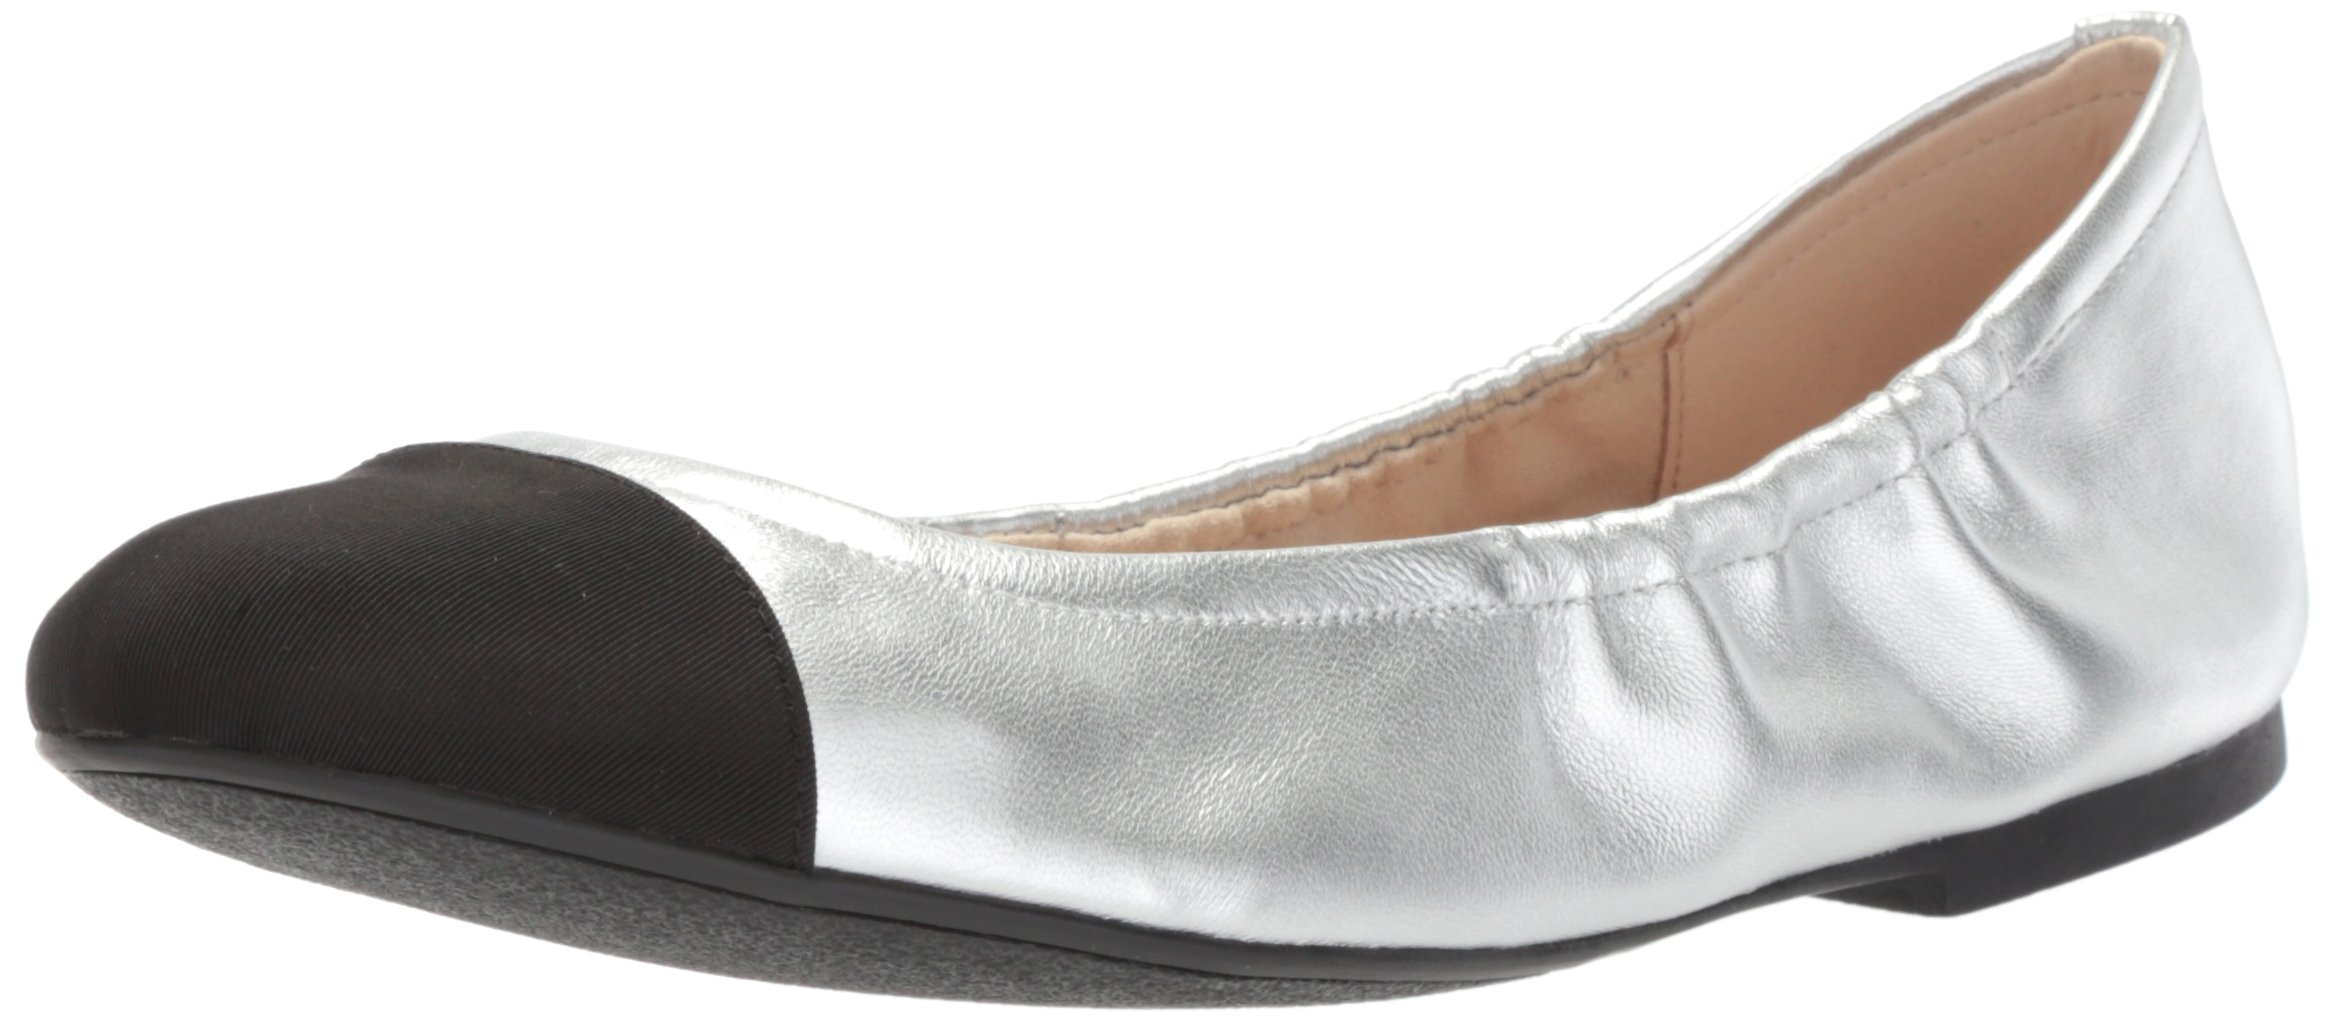 Sam Edelman Women's fraley Ballet Flat, Soft Silver/Black, 7 Medium US by Sam Edelman (Image #1)